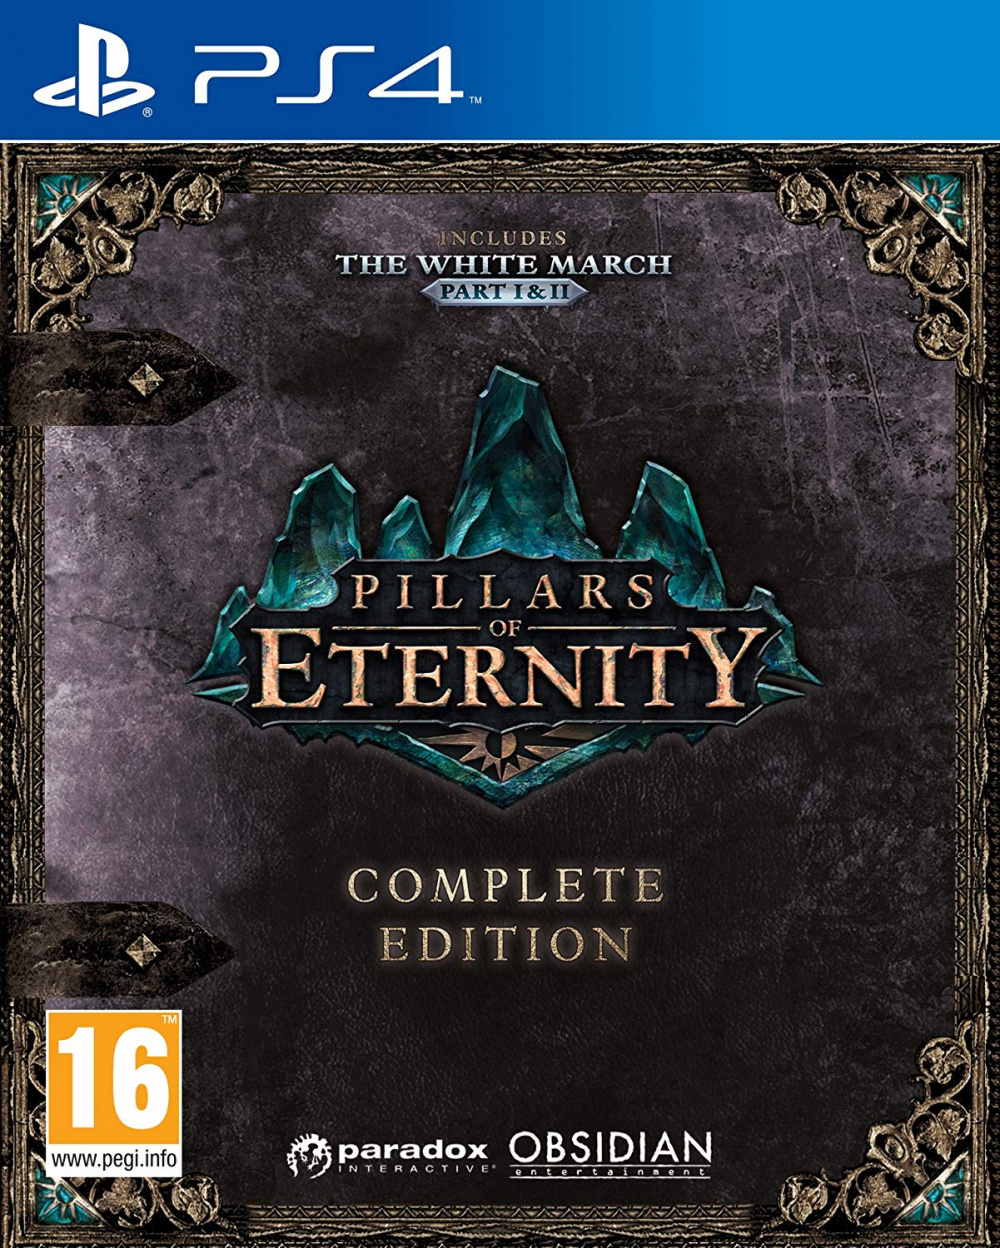 Pillars Of Eternity - Complete Edition [PS4] 5.05 / 6.72 / 7.02 [USA] (2017) [Русский] (v1.06)